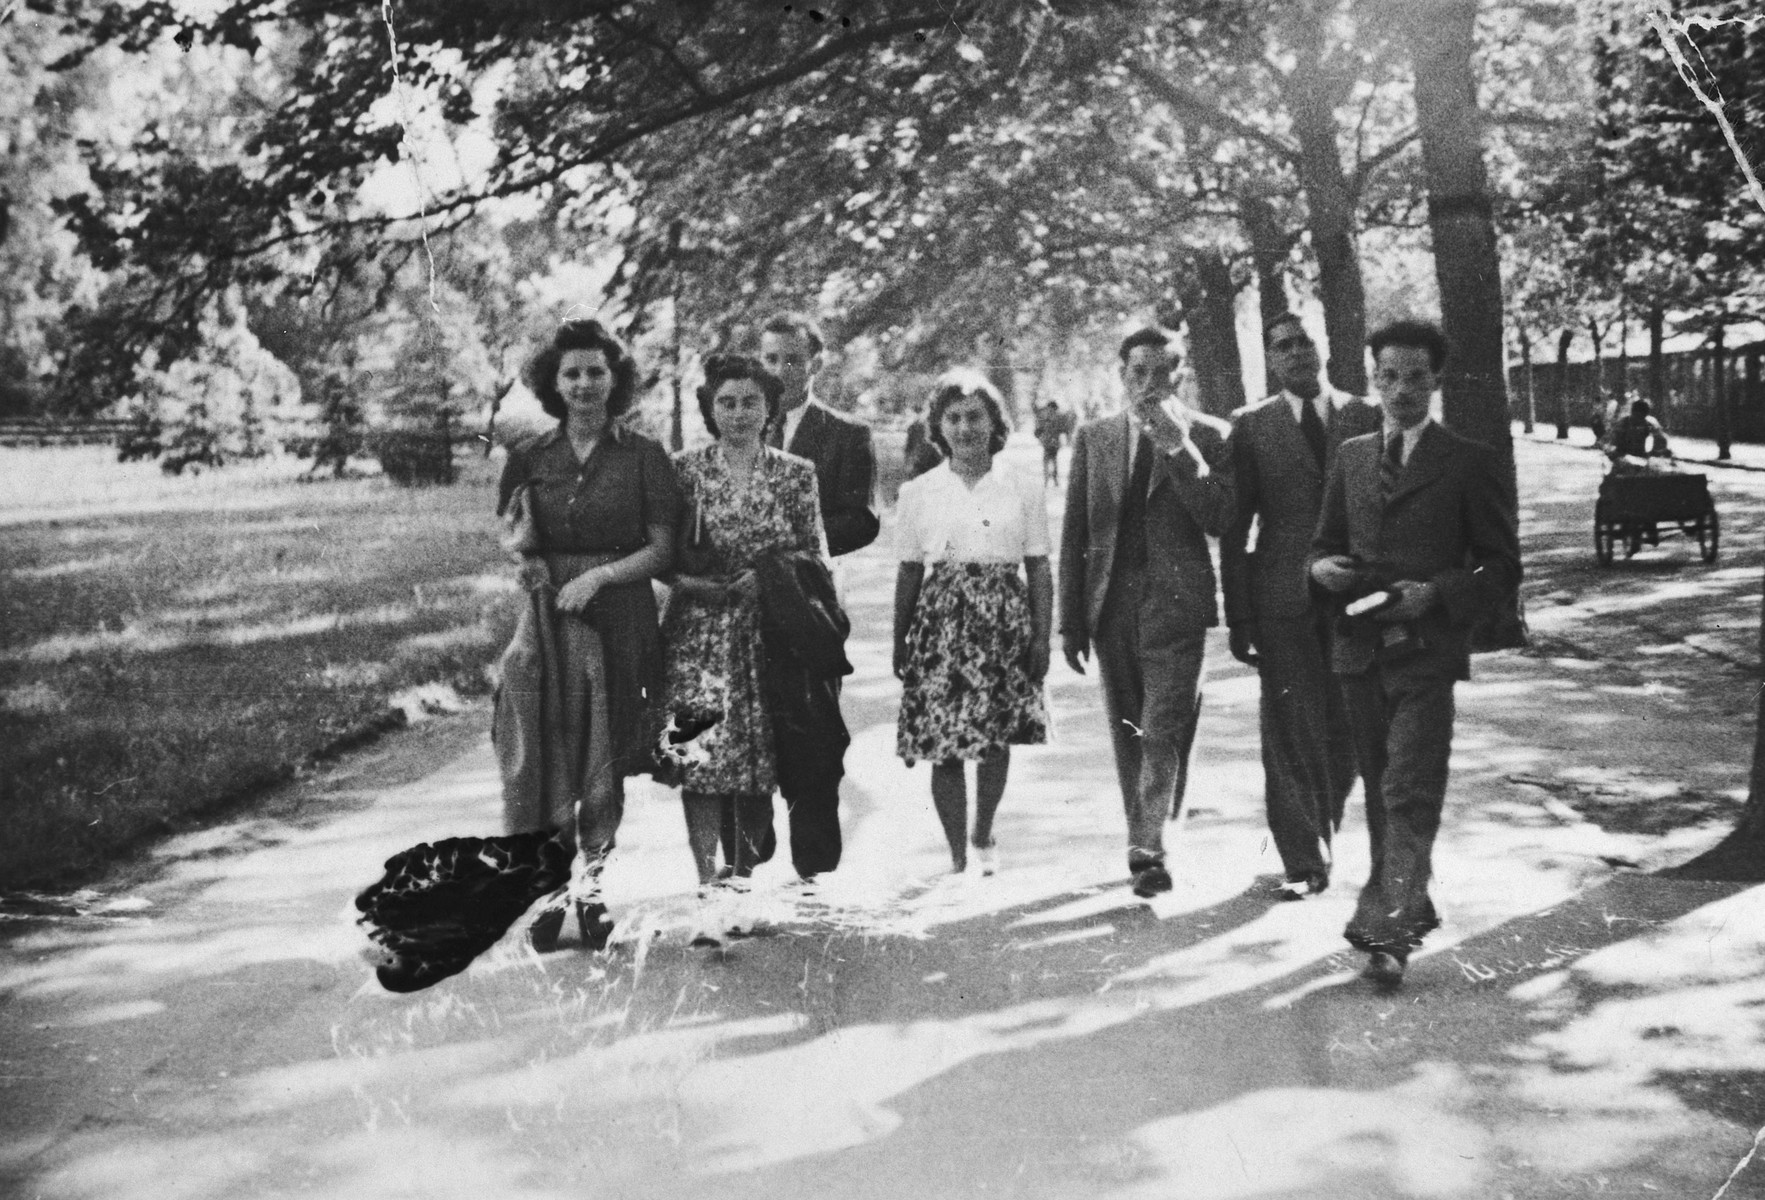 A group of Hungarian-Jewish friends, one of who was on forlough from a labor battalion, go for a walk in a park in Budpest.  Pictured are Eva Beke, Ica, Denes Simonyi, Dini, Erzsi, Fekete, and Anti.